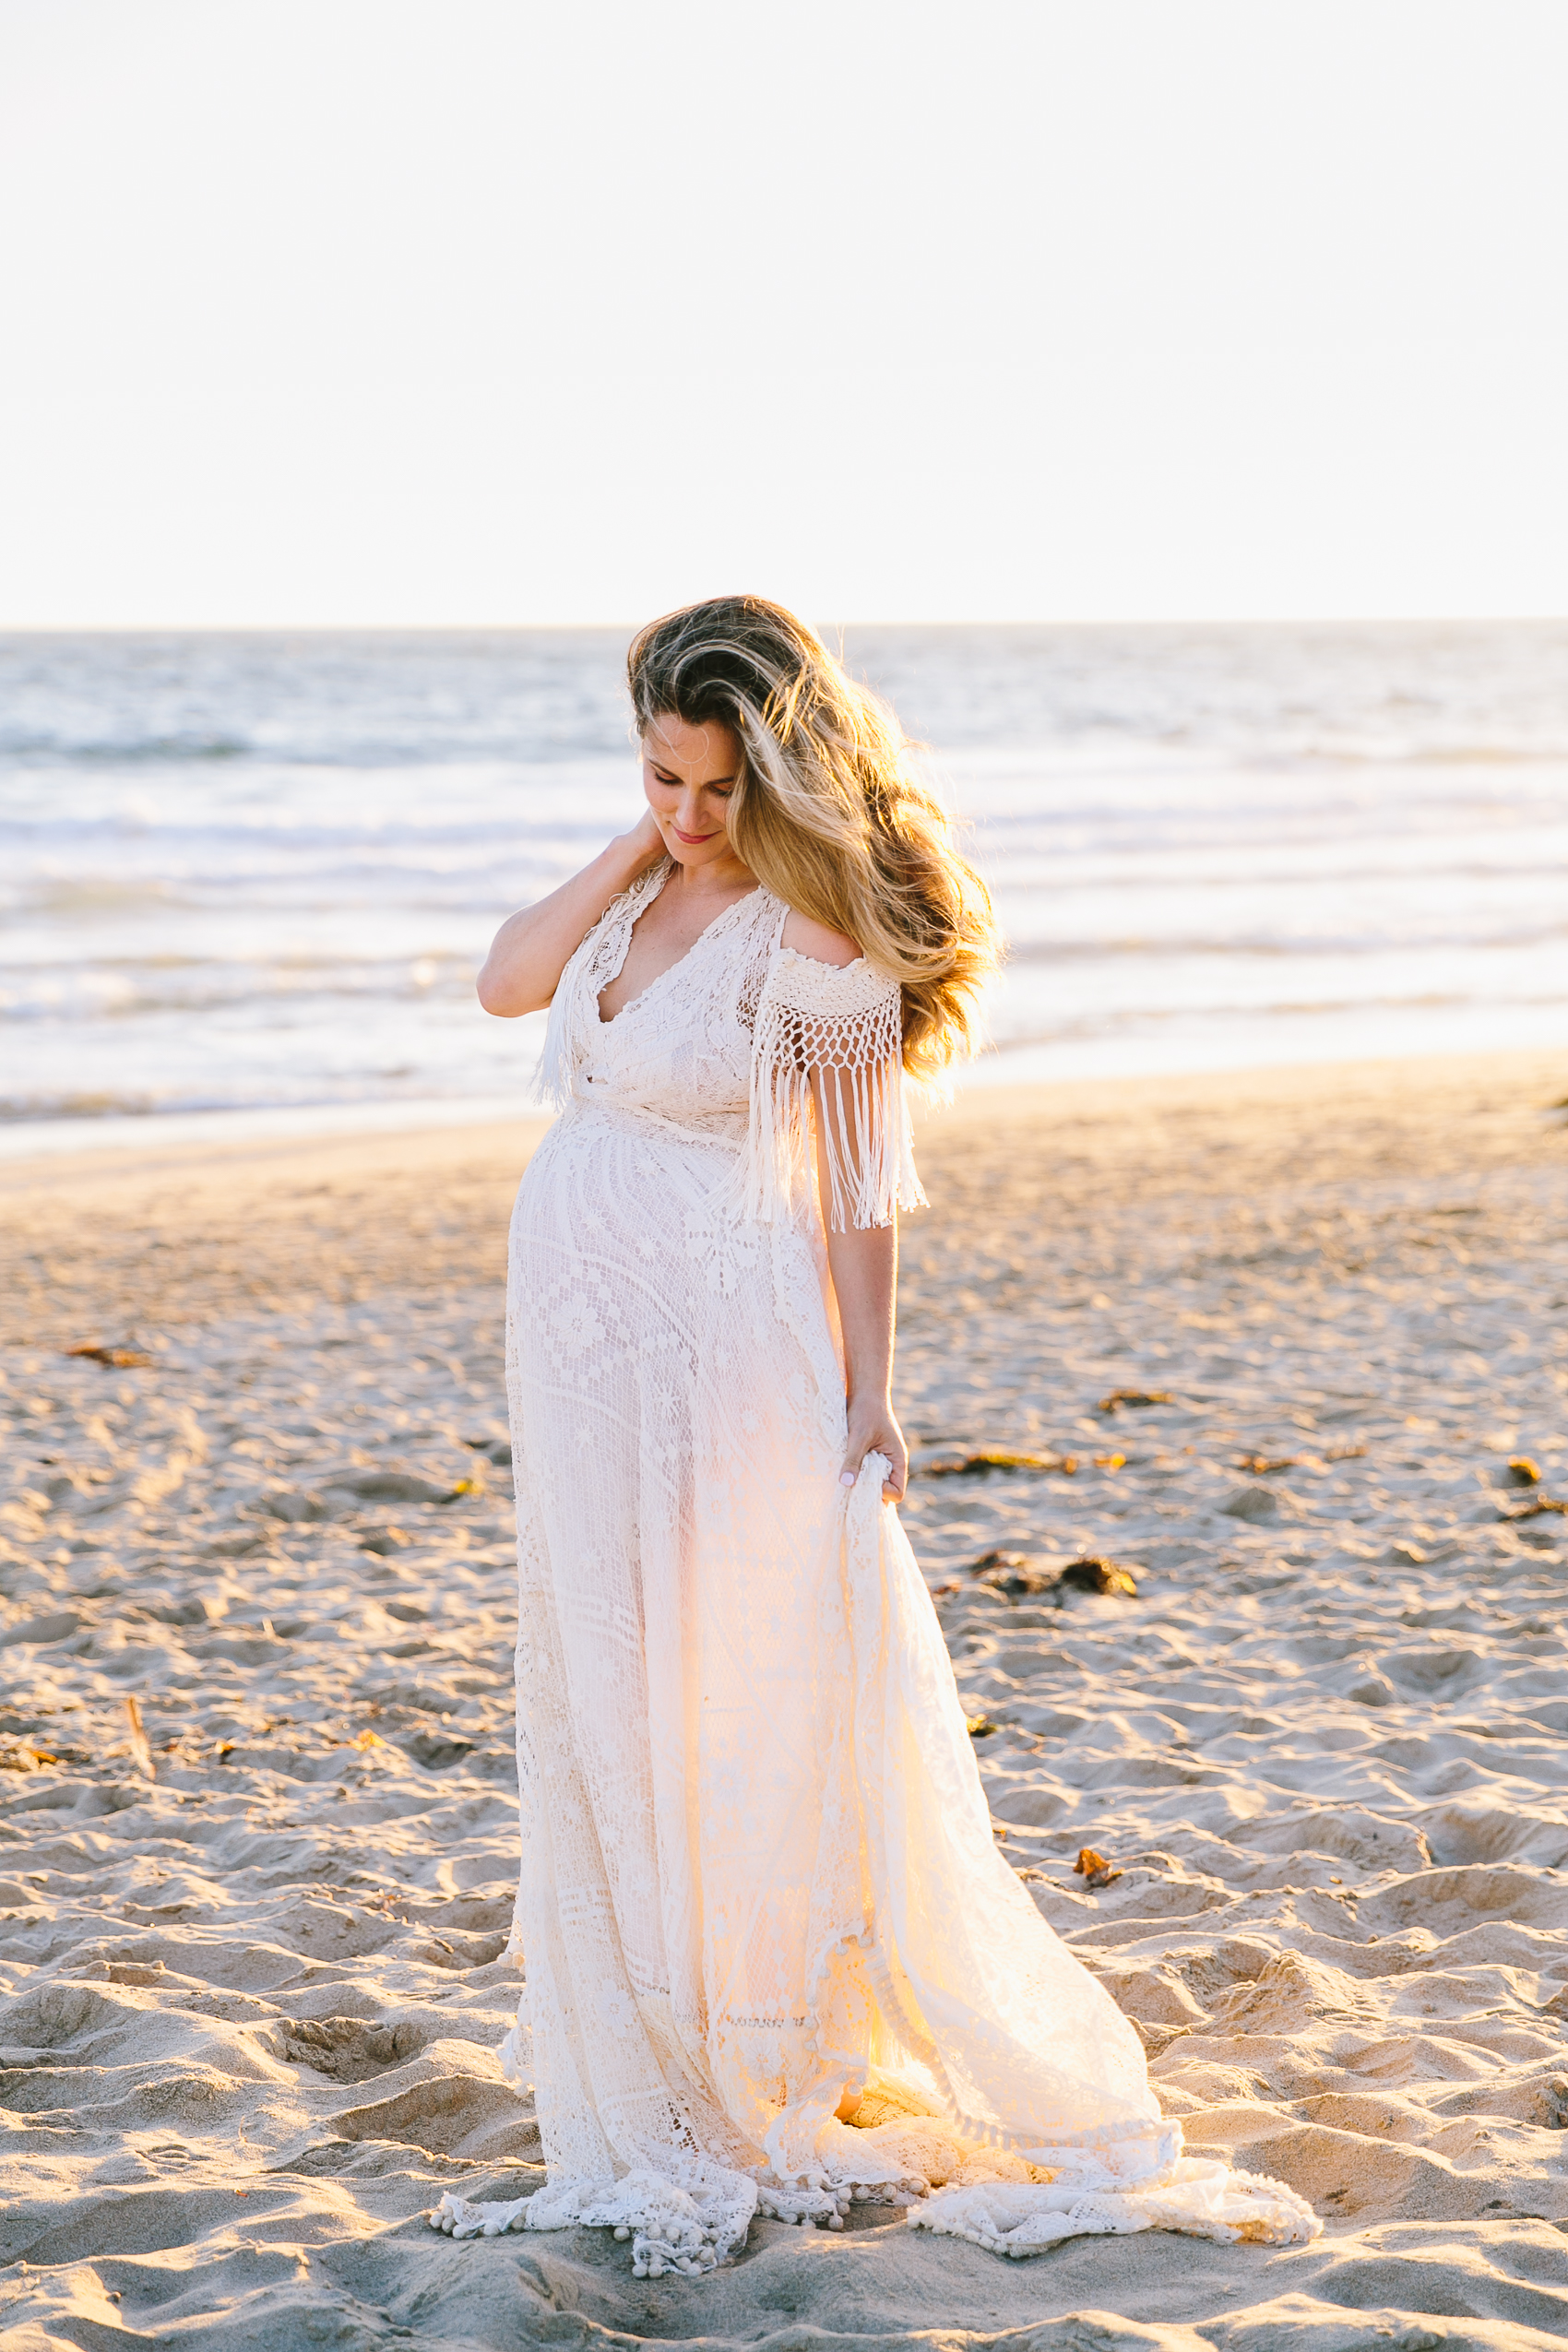 Los_Angeles_Family_Photographer_Maternity_Photos_Baby_Pregnancy_Venice_Beach_Golden_Hour-0888.jpg